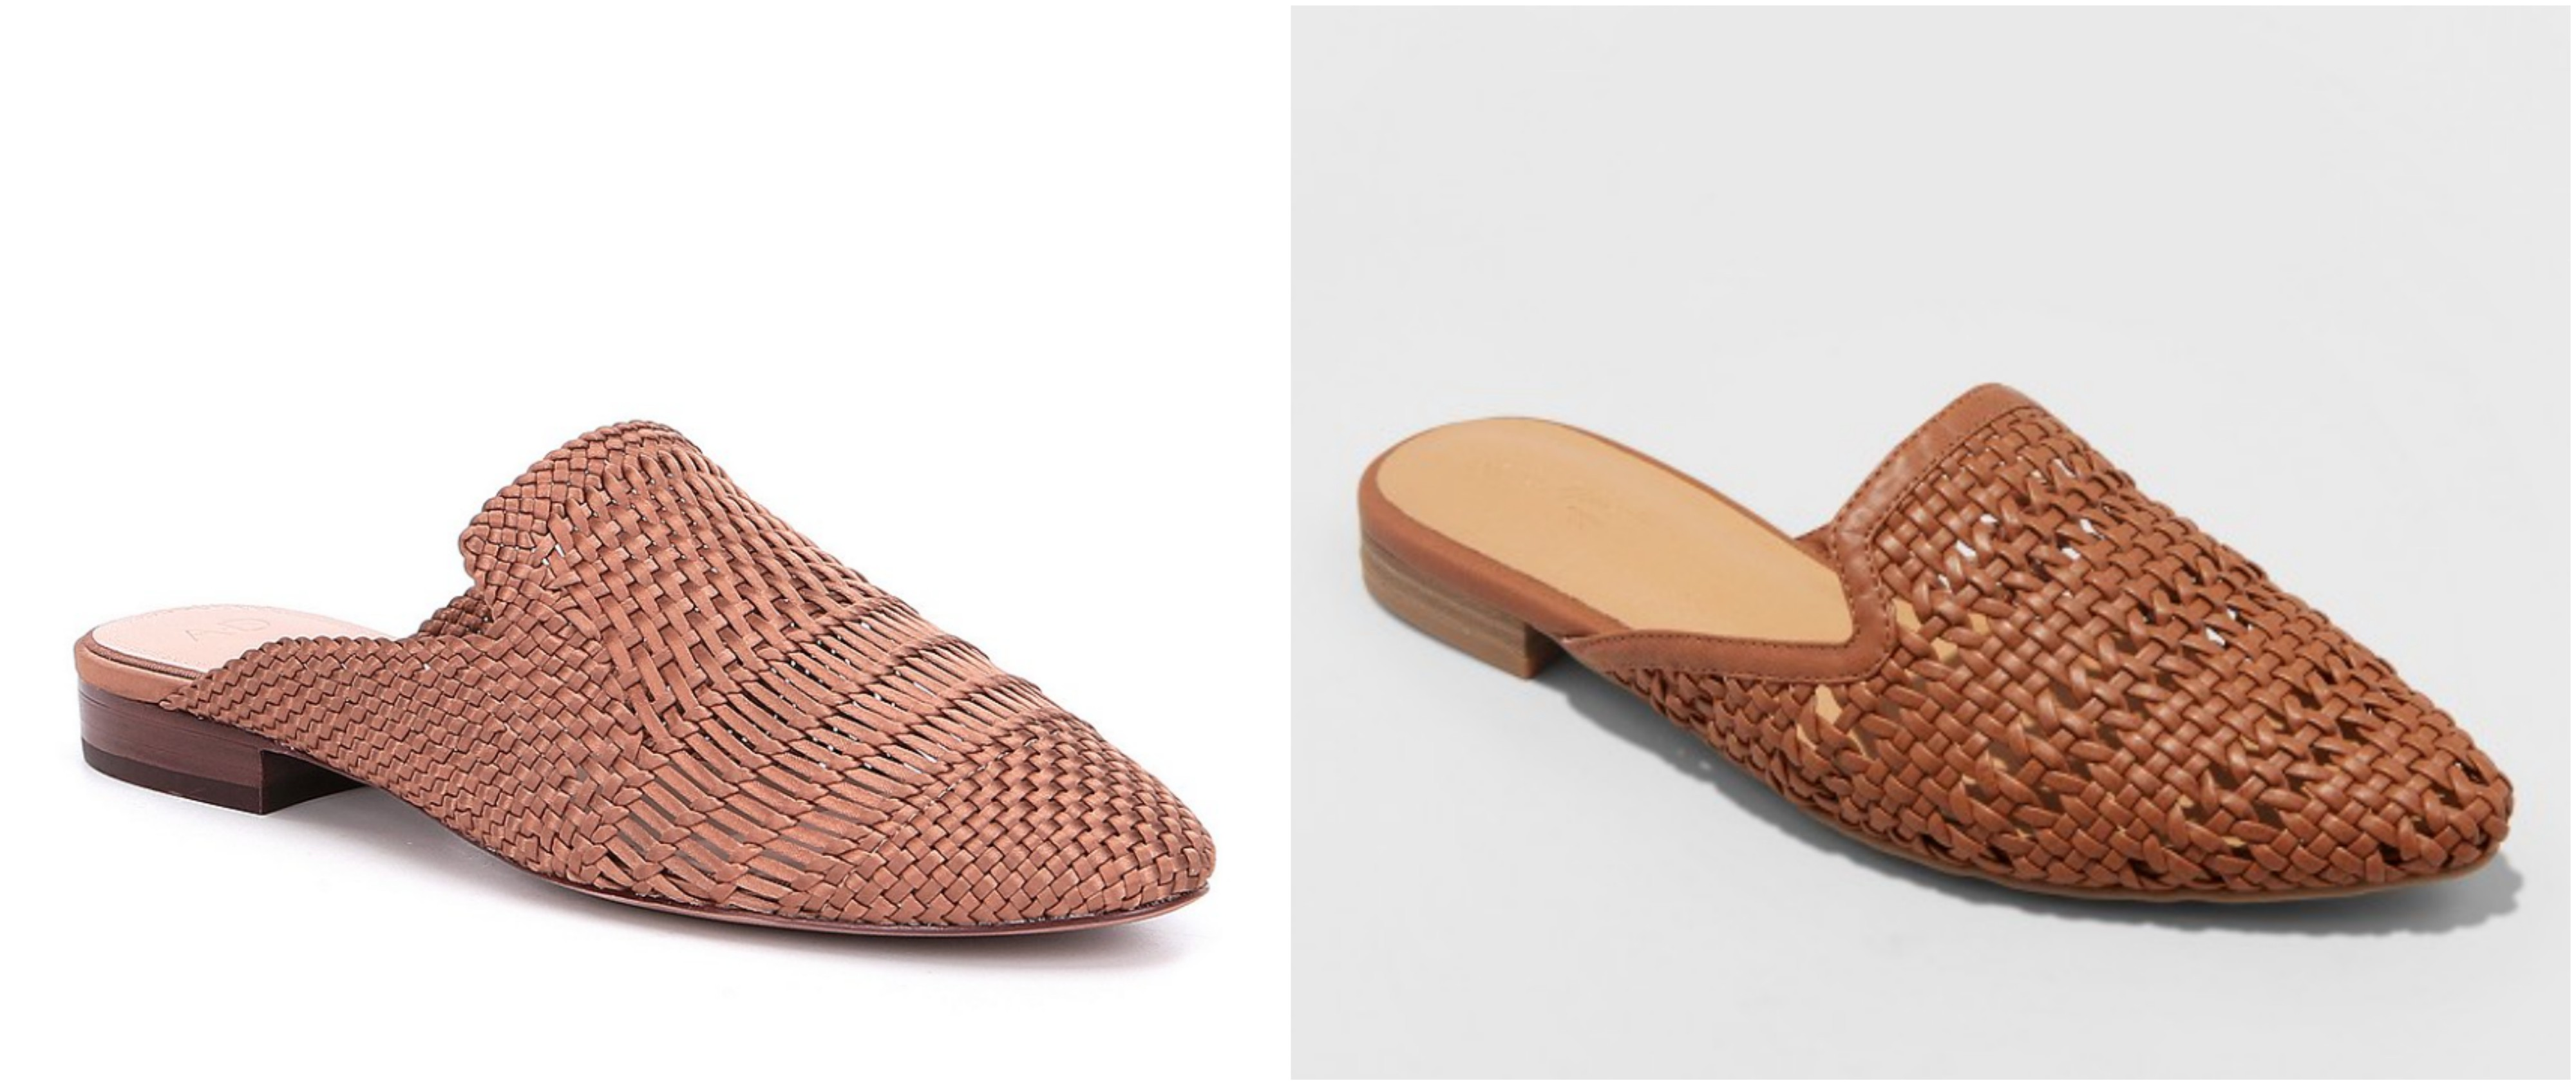 Woven Mule - - Best Target Shoe Dupes - Communikait by Kait Hanson